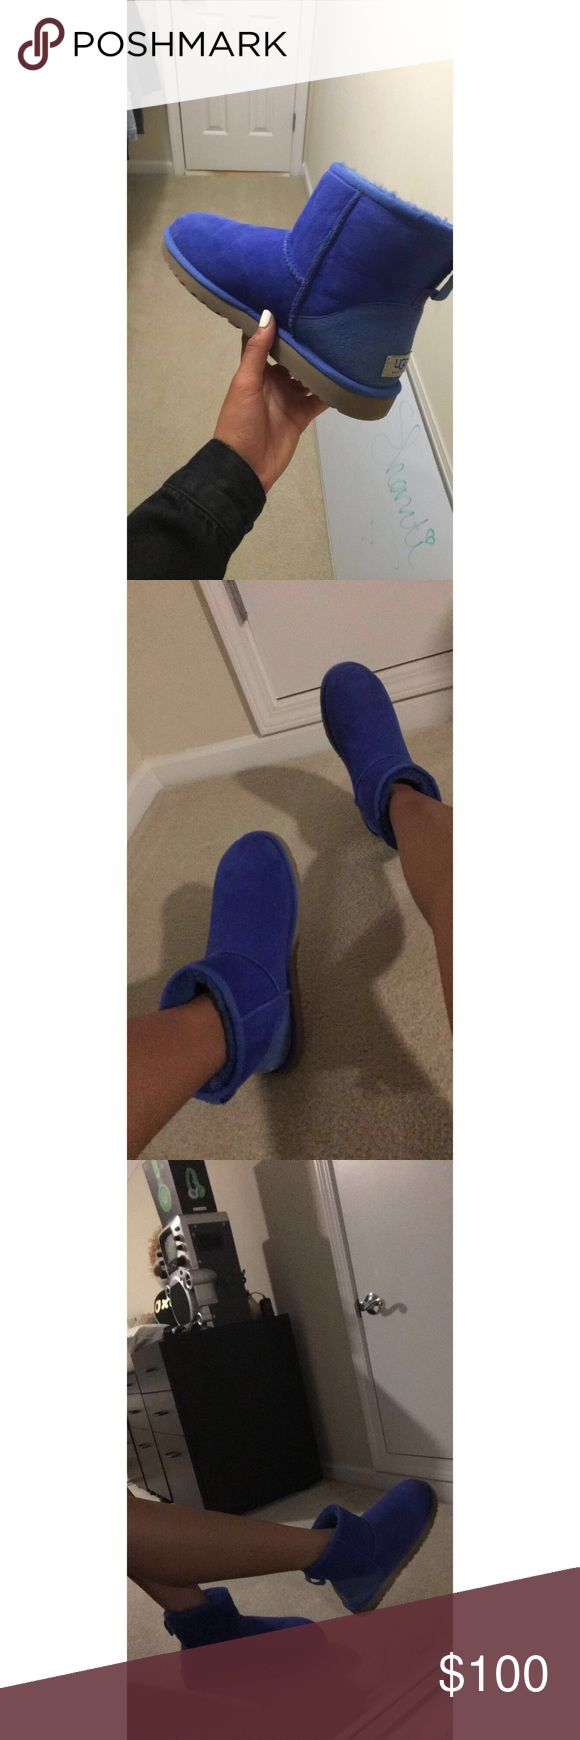 Authentic Blue ugg low tops Only worn 1/2 time... sadly too big for me UGG Shoes Ankle Boots & Booties